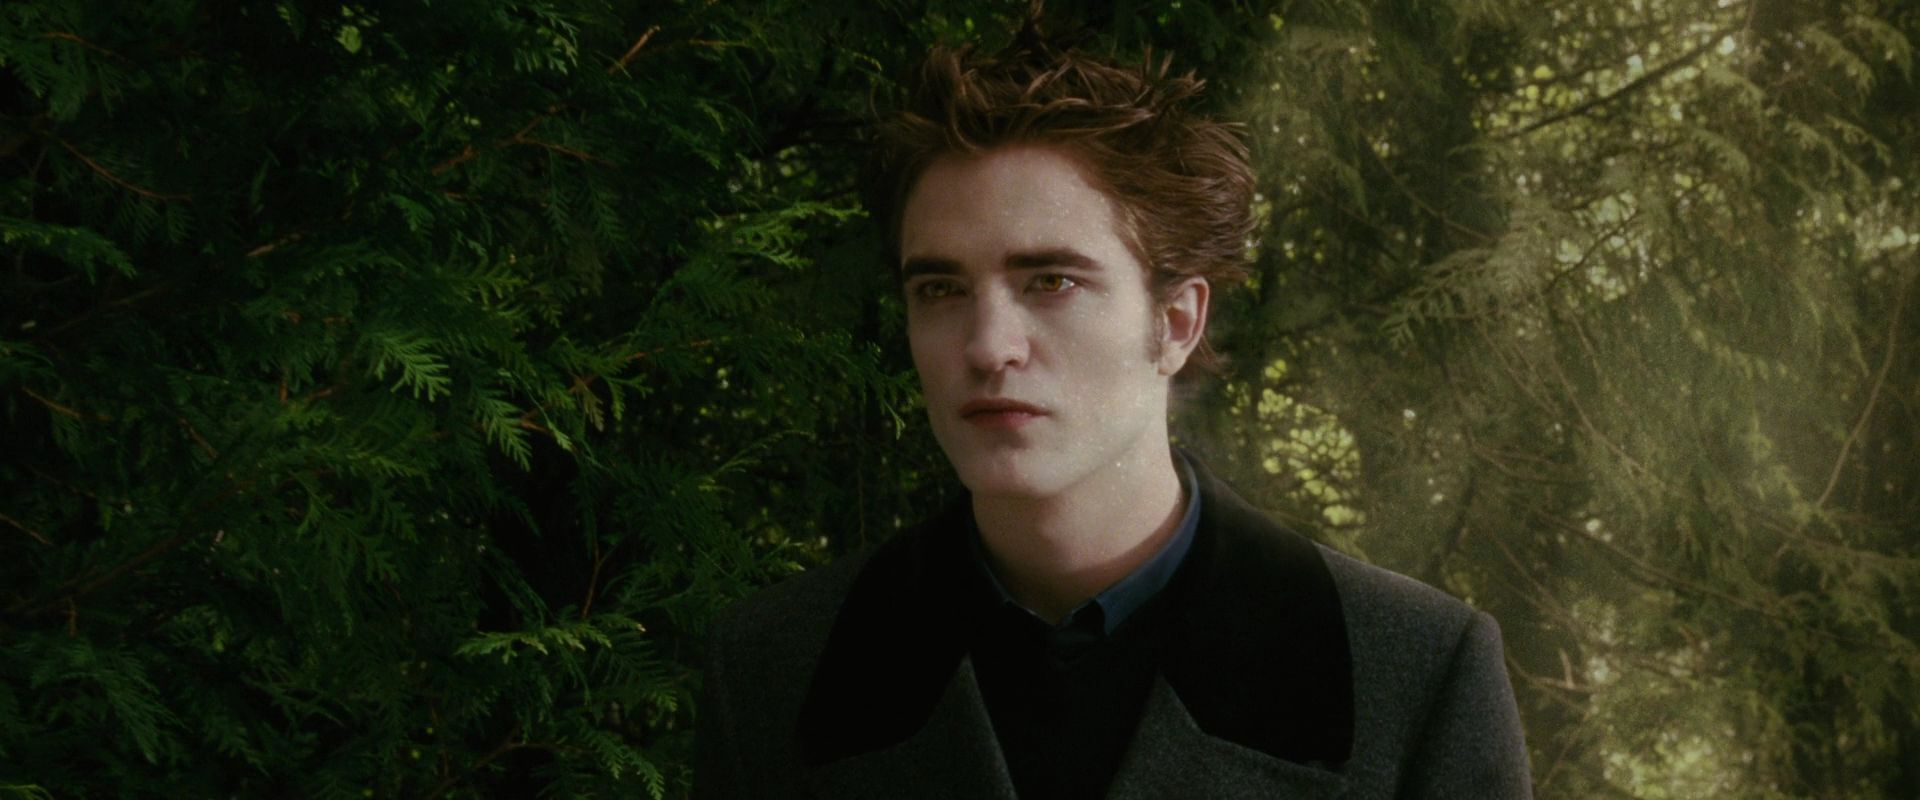 Twilight New Moon Pictures Of Edward And Bella